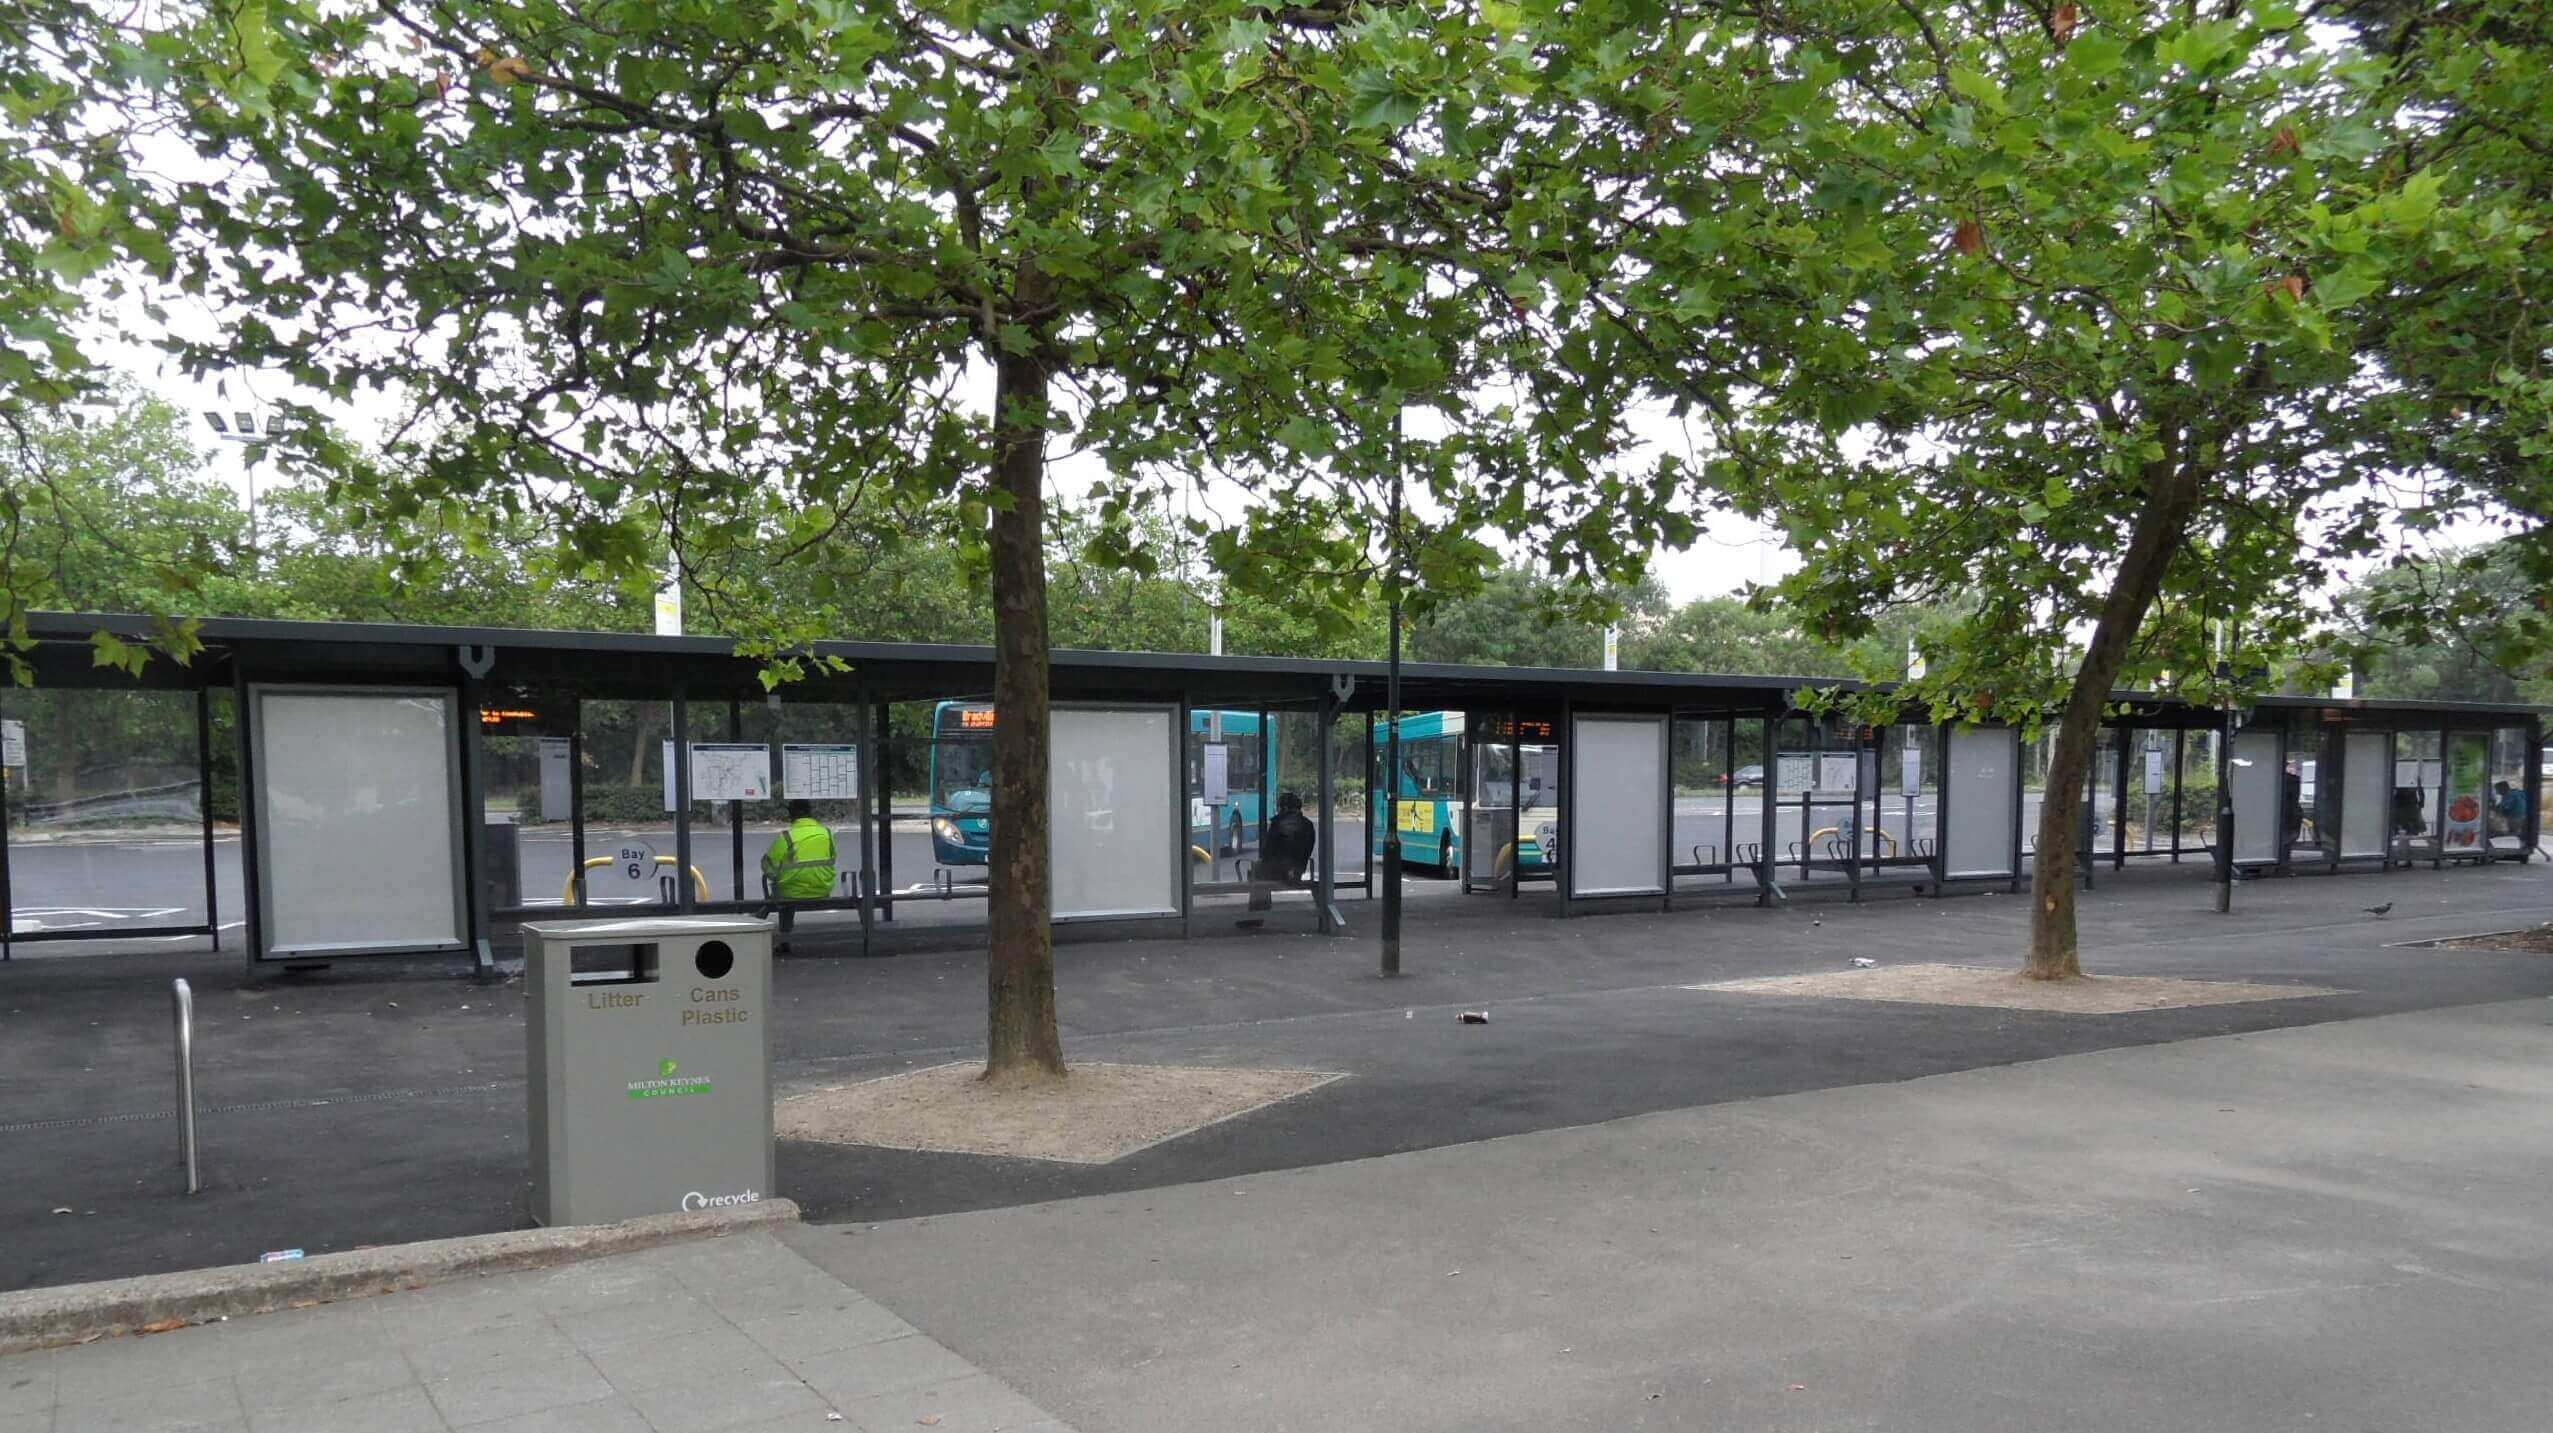 Bletchley Bus Station